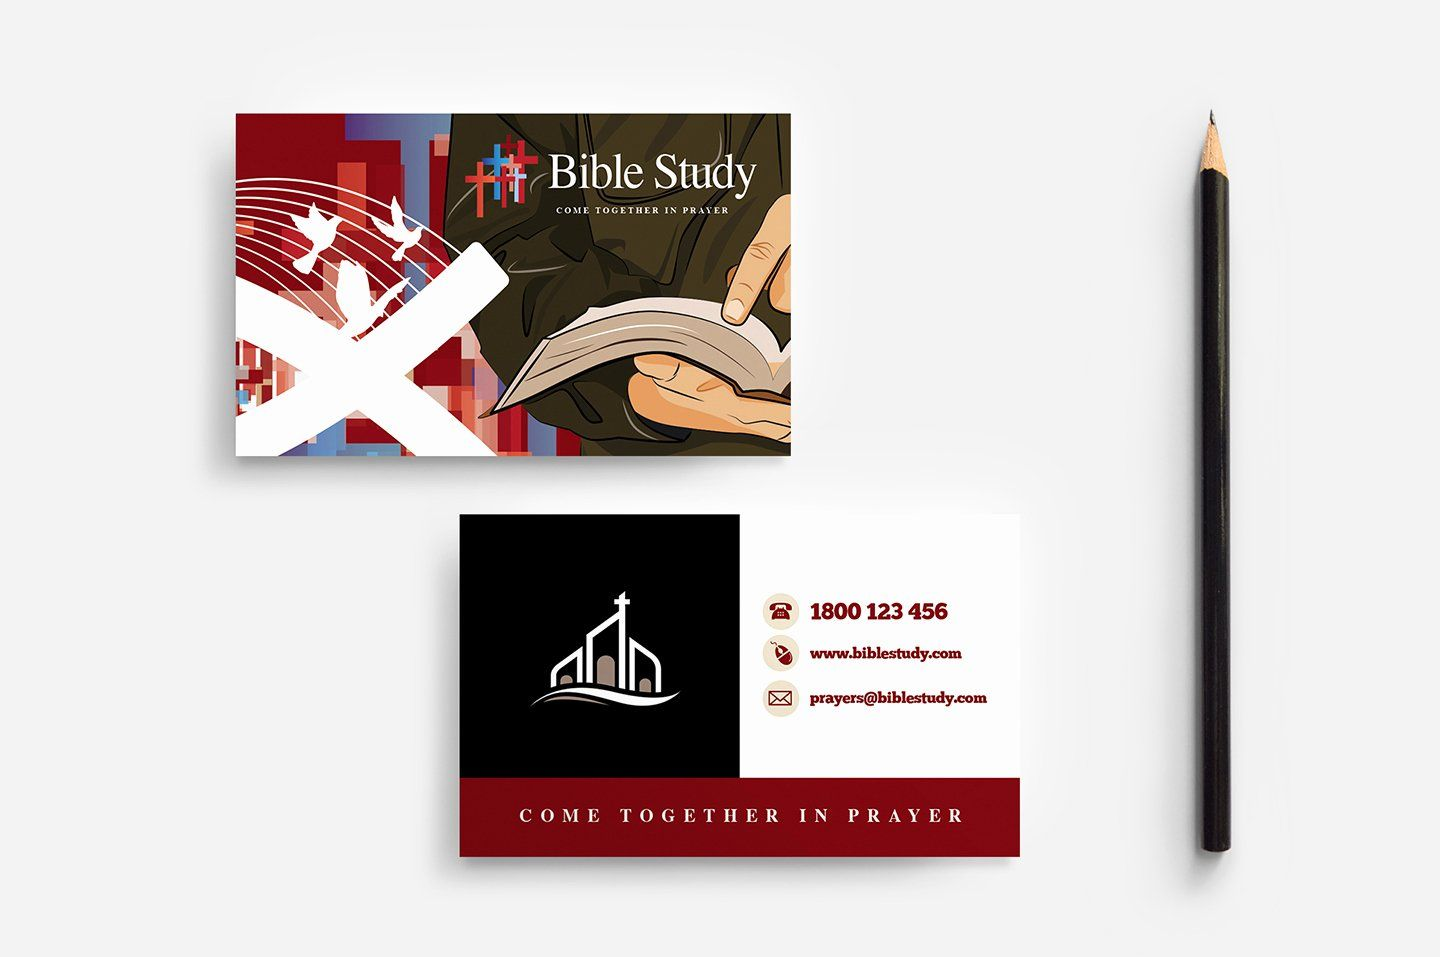 Vistaprint Business Card Photoshop Template Luxury Christian Church Business Free Business Card Templates Business Card Template Design Business Card Photoshop